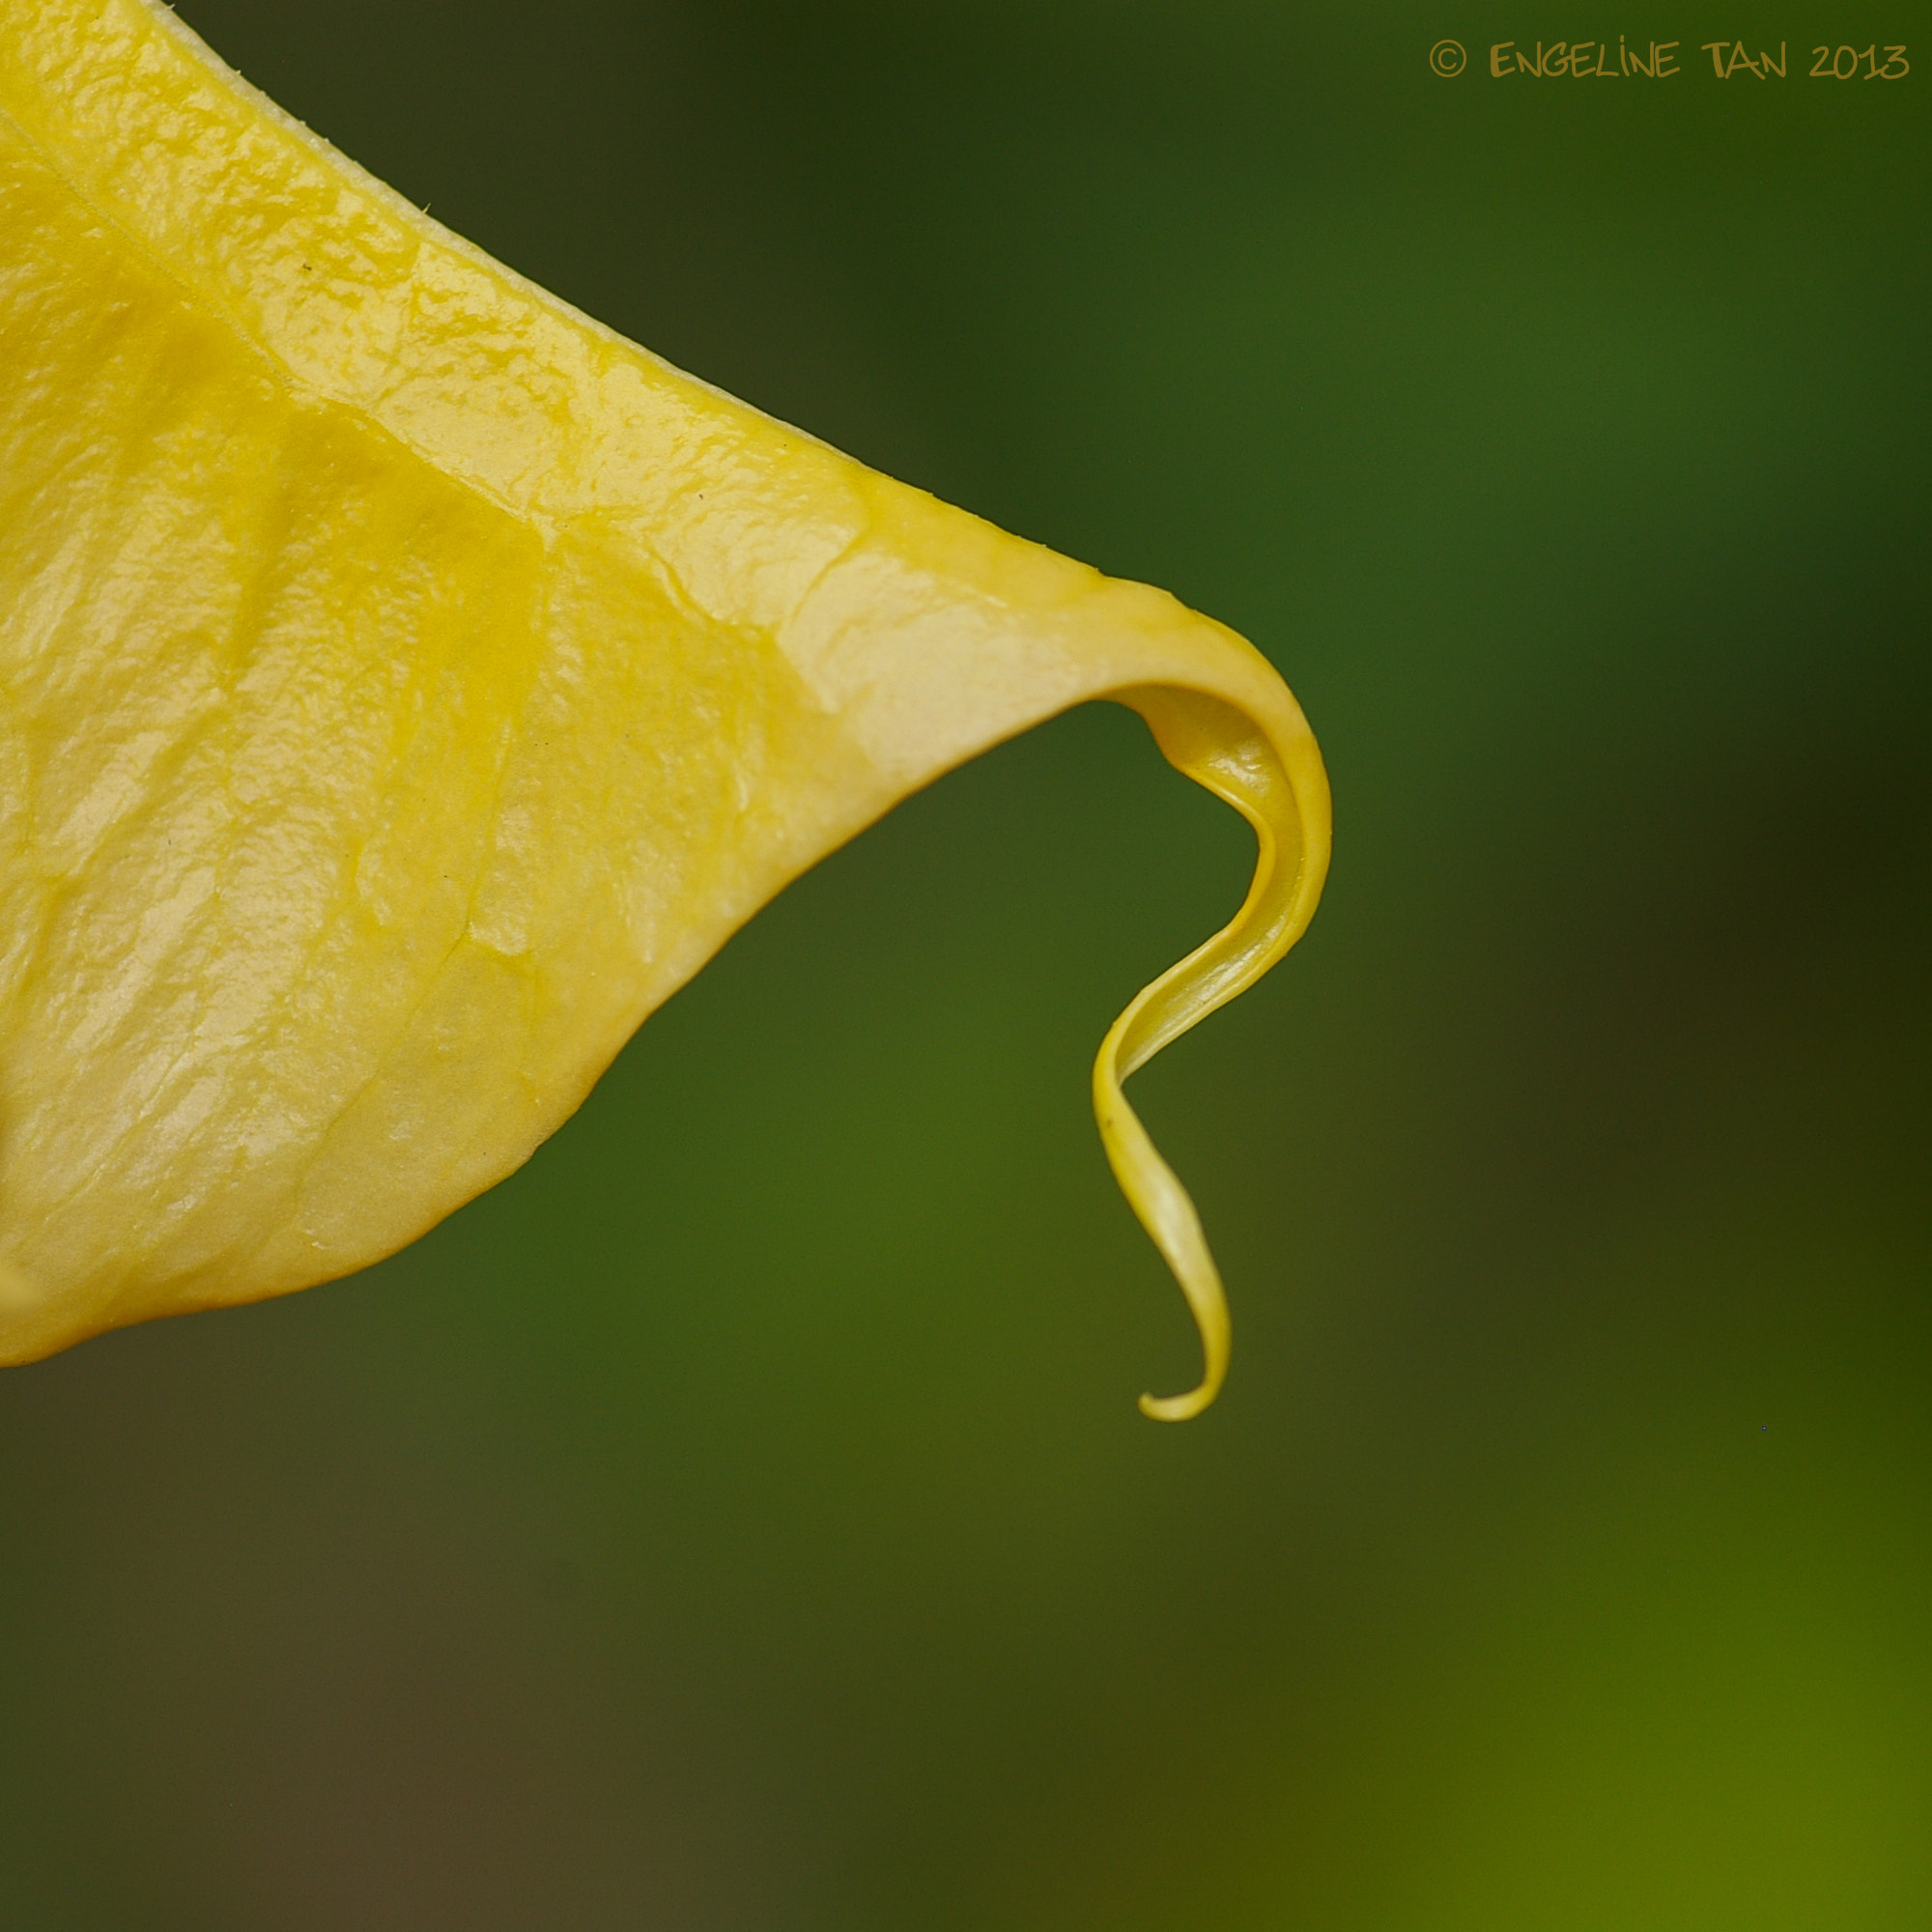 Photograph Brugmansia detail by Engeline Tan on 500px